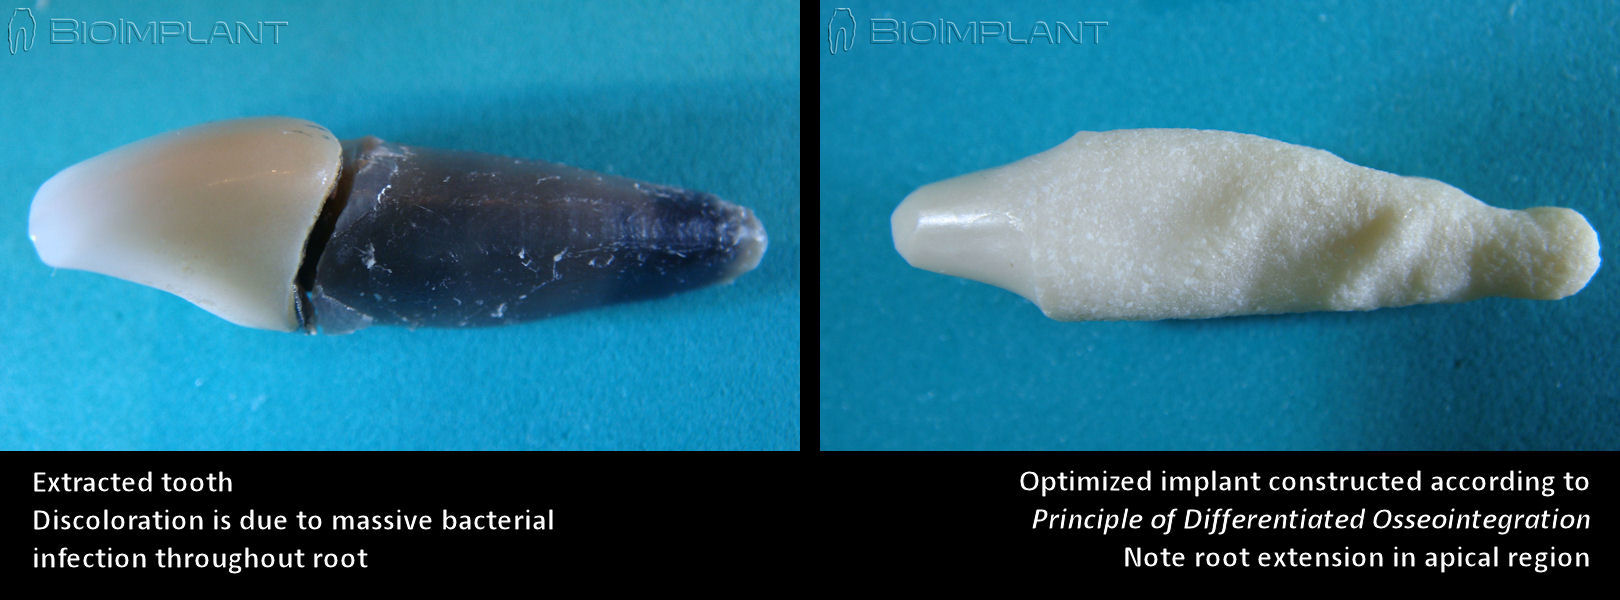 tooth_compared_to_anatomic_implant